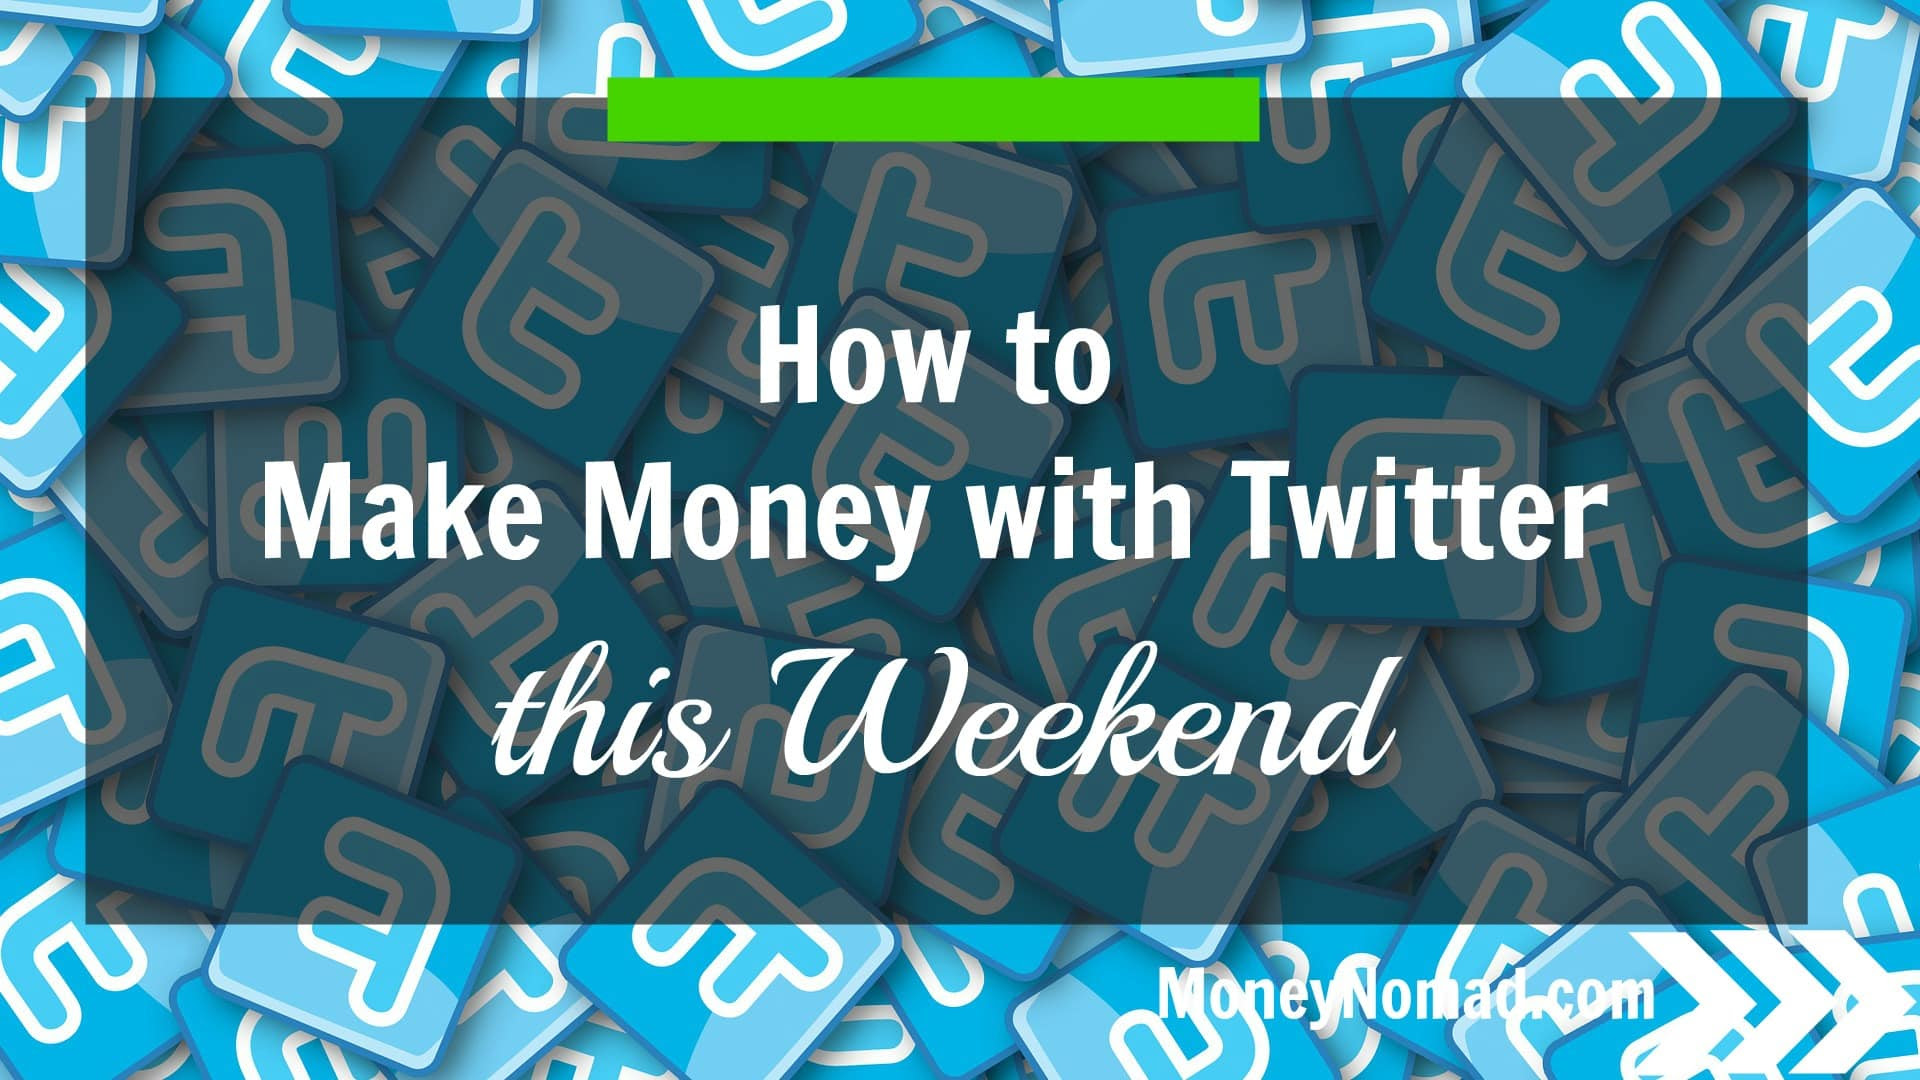 How to Make Money with Twitter - Money Nomad